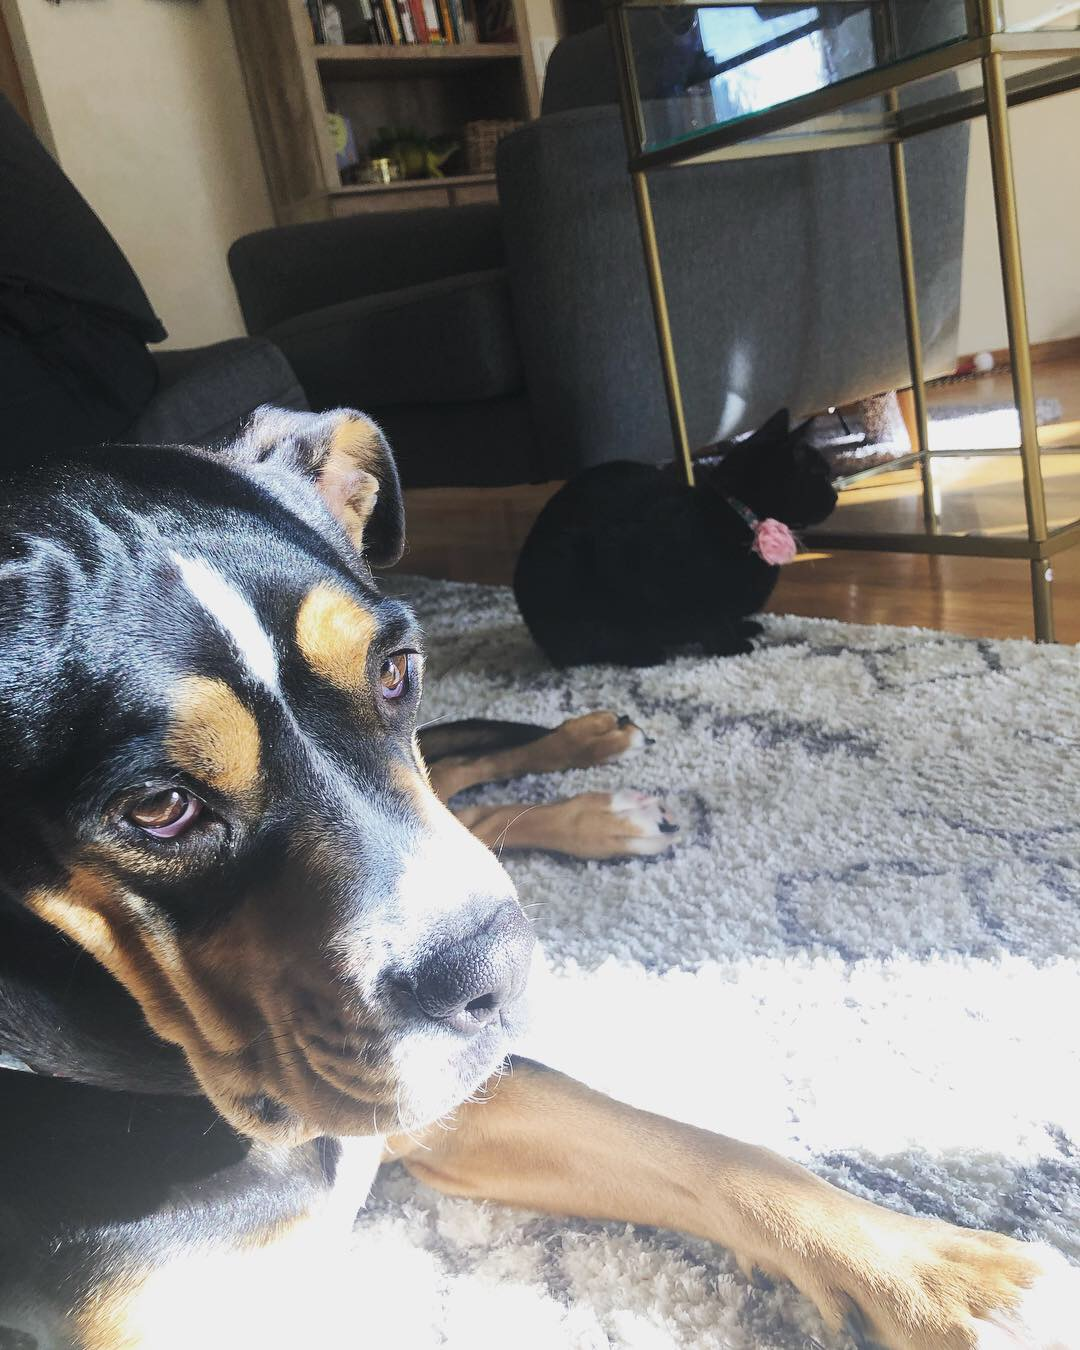 adoptable Dog in Portland,OR named Orca